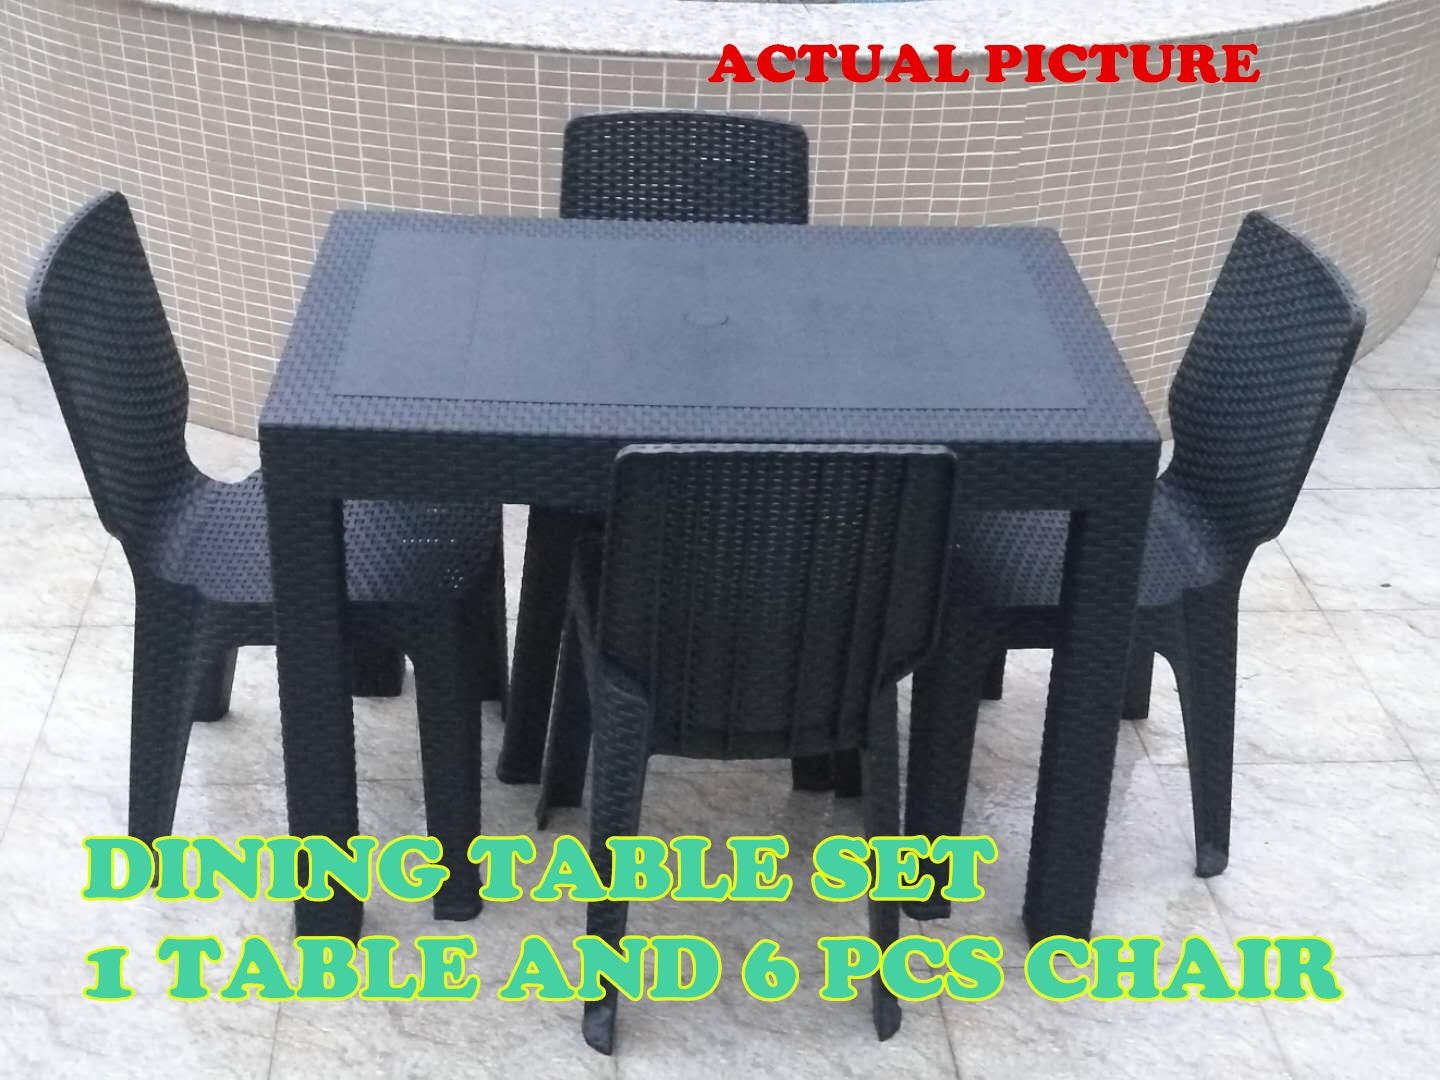 DINING TABLE SET (TABLE AND 6PCS CHAIR) OUTDOOR TABLE INDOOR TABLE DINNING  ROOM SET